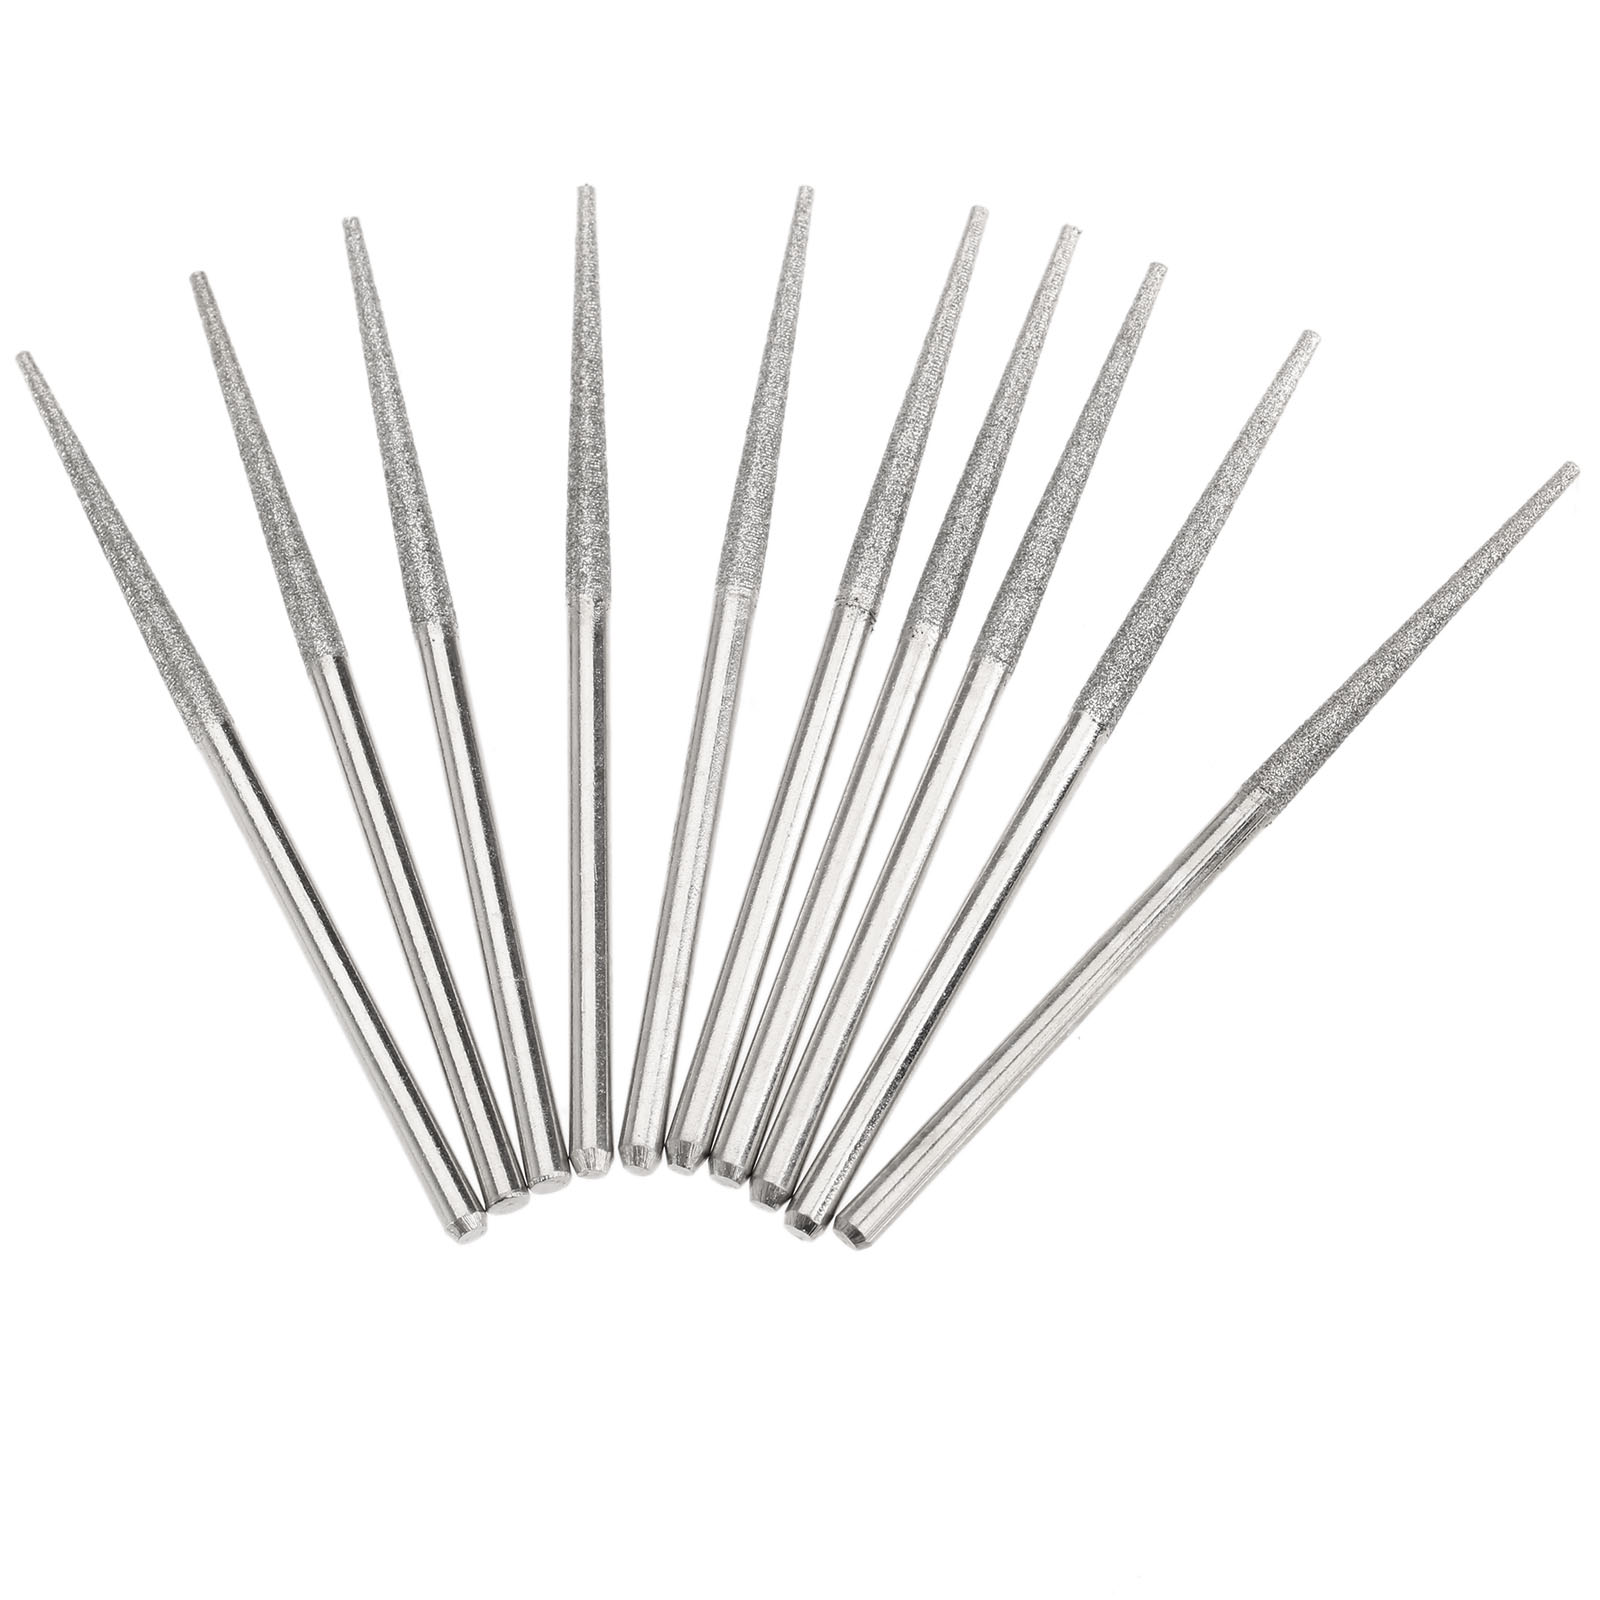 10Pcs Dremel Accesories Mini Drill Diamond Grinding Rods 3mm Shank Bur Bit Diamond Grinding Needle Grinding Carving Tool